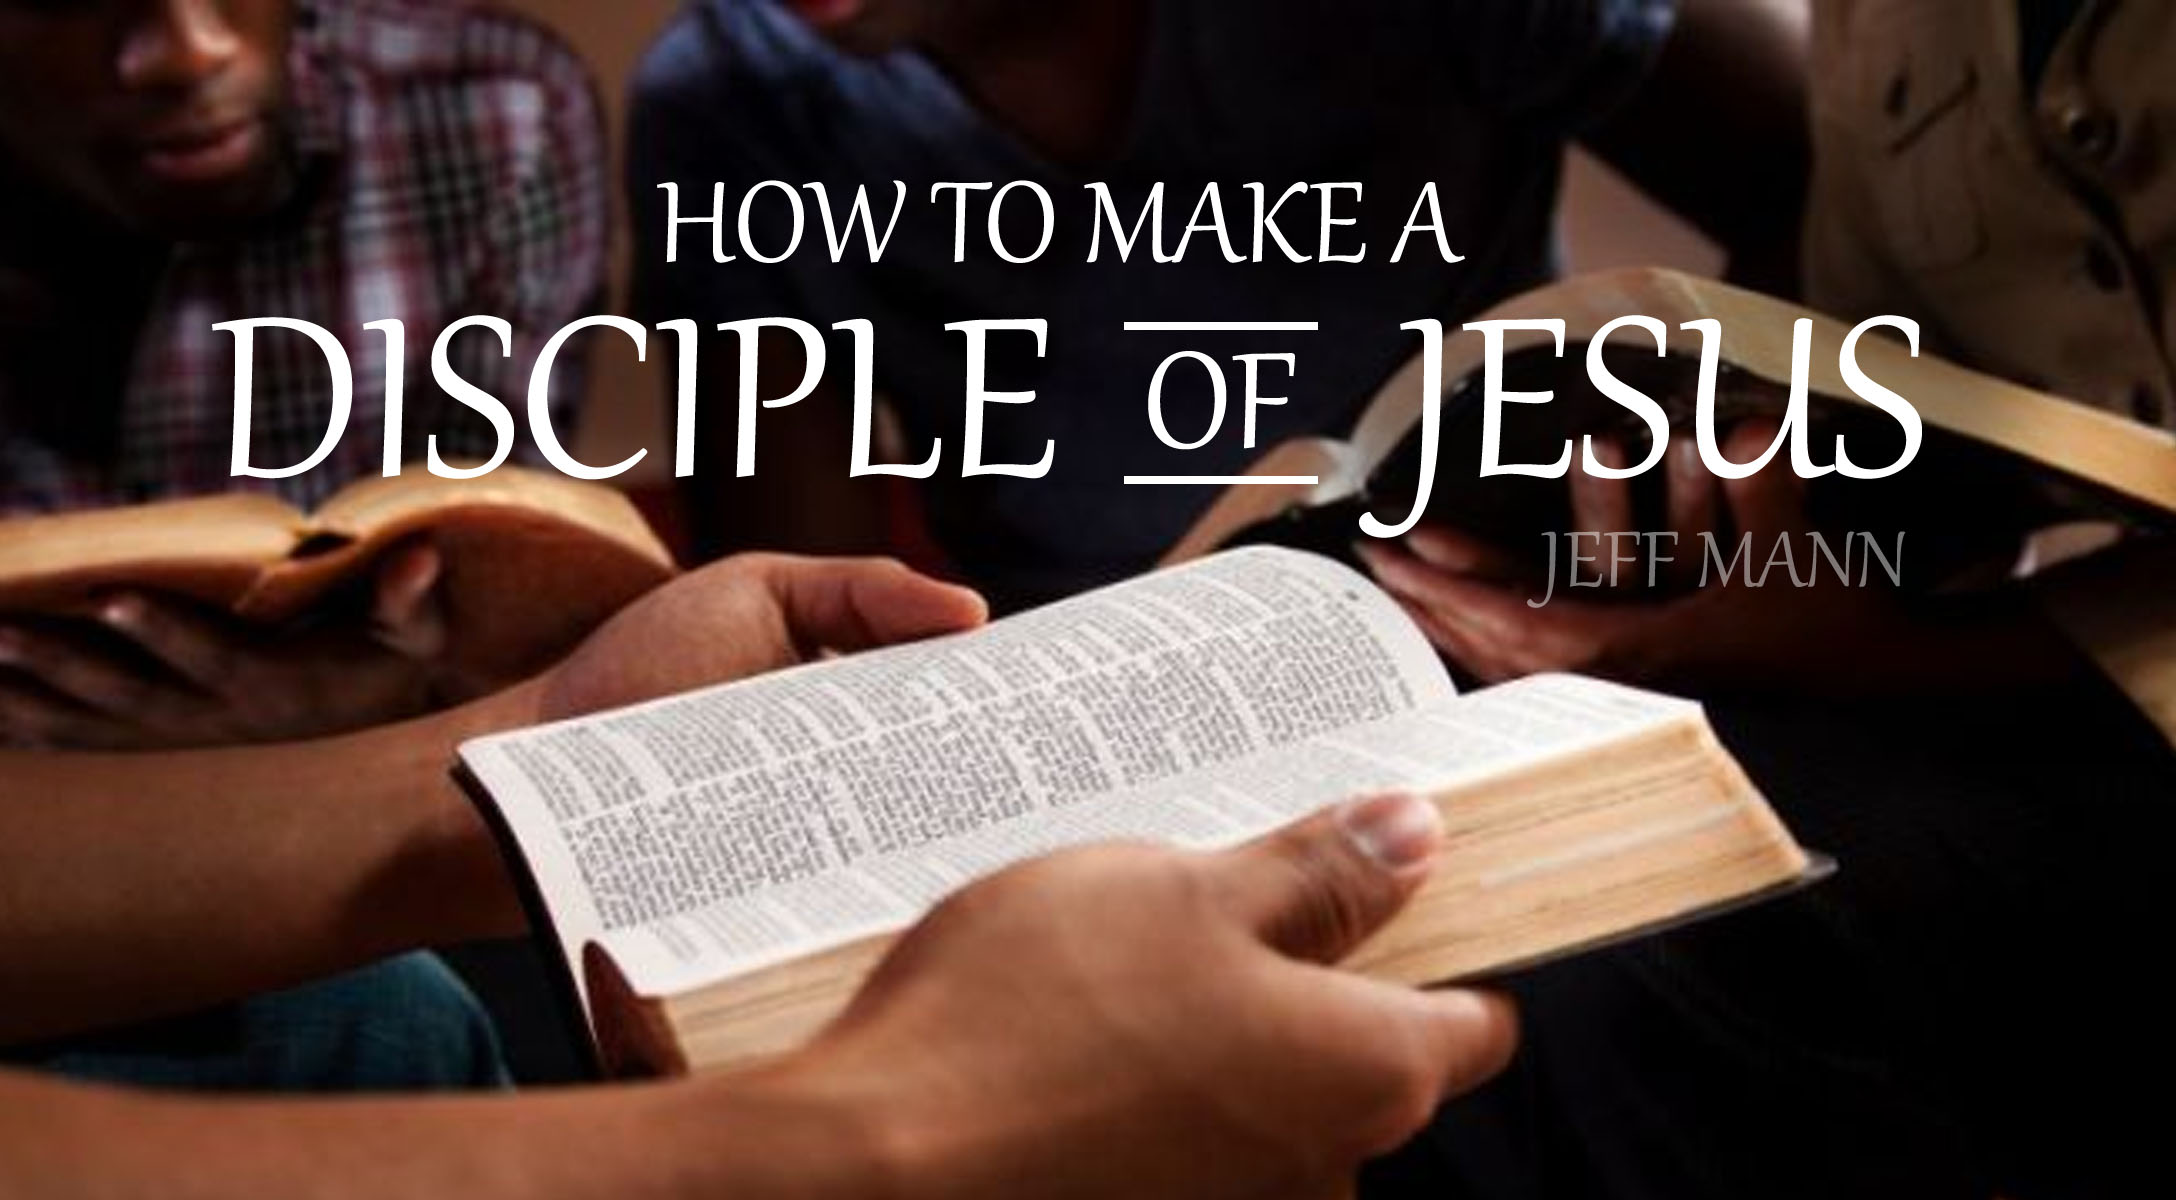 How To Make A Disciple Of Jesus